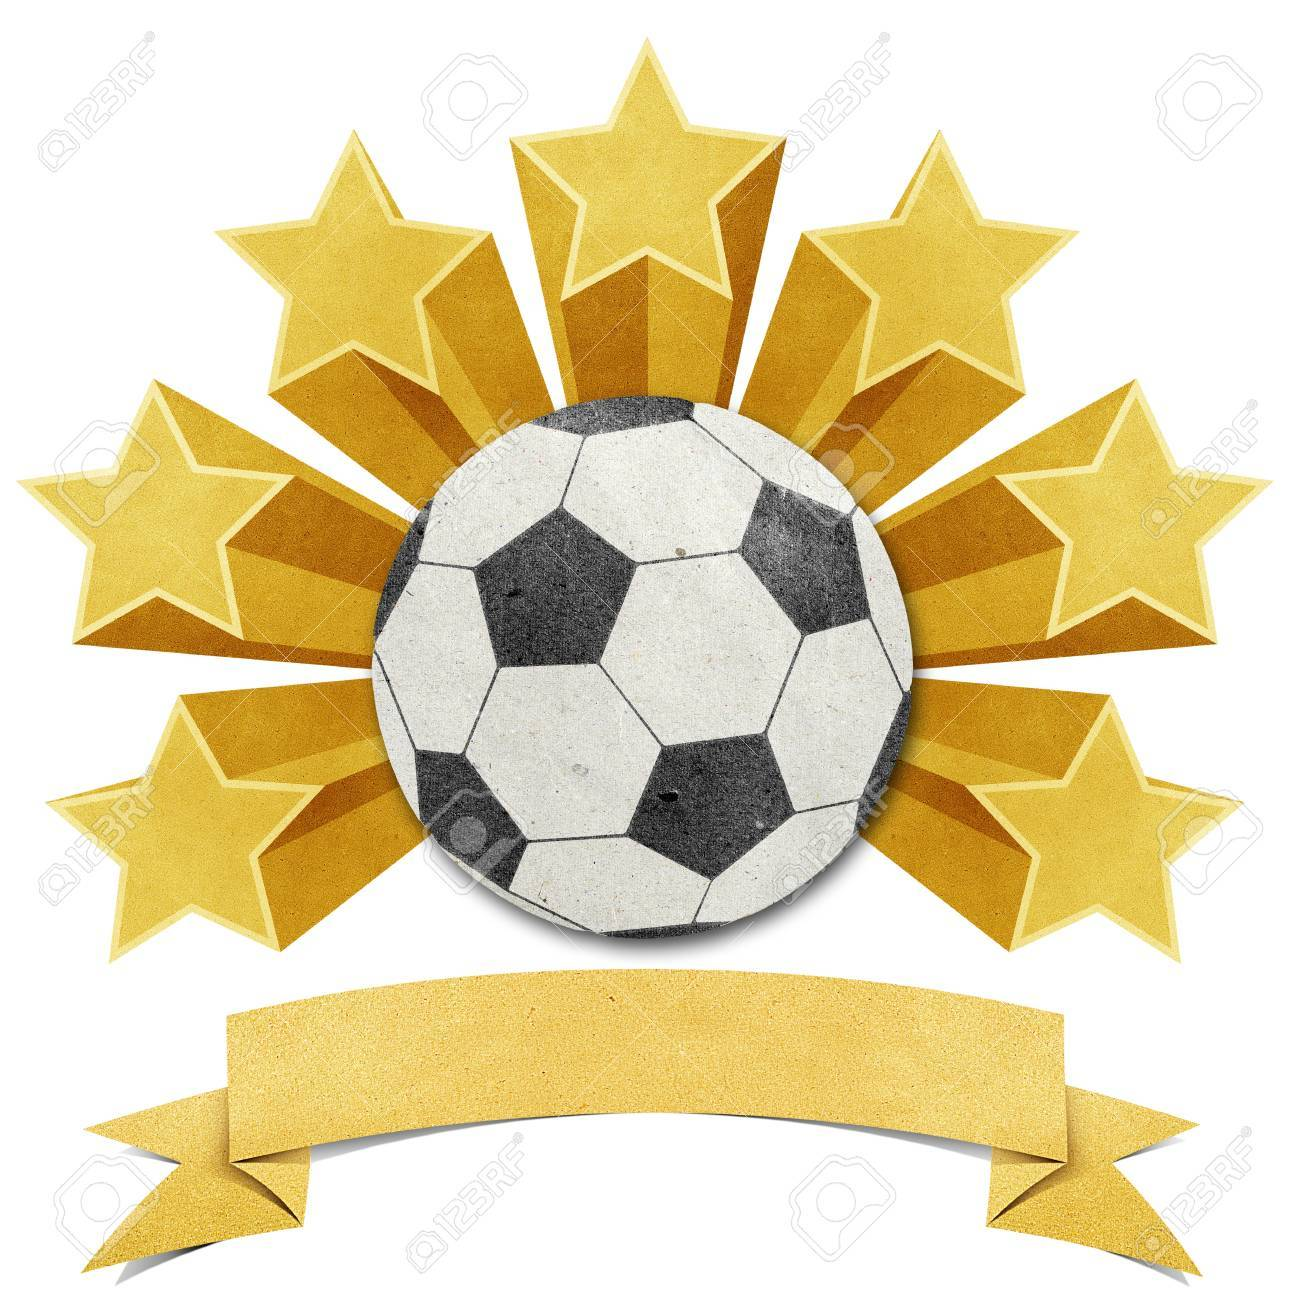 football star recycled papercraft background Stock Photo - 11646653